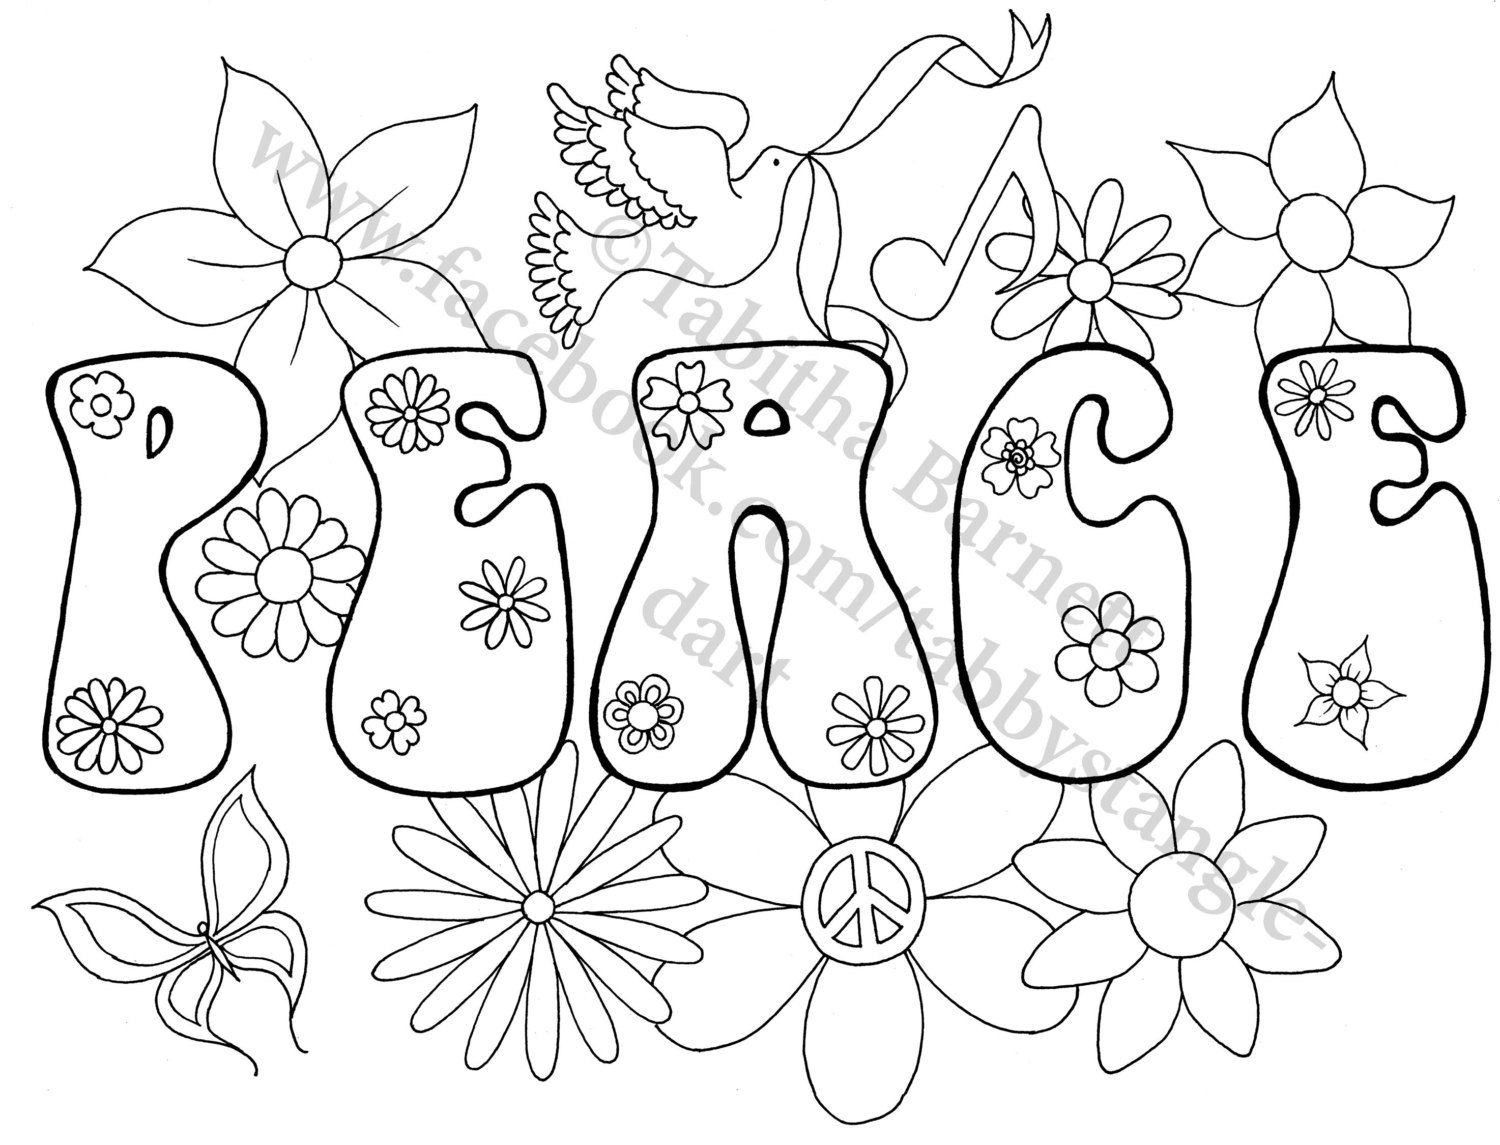 Peace on Earth Adult Coloring Page by TabbysTangledArt on Etsy ...